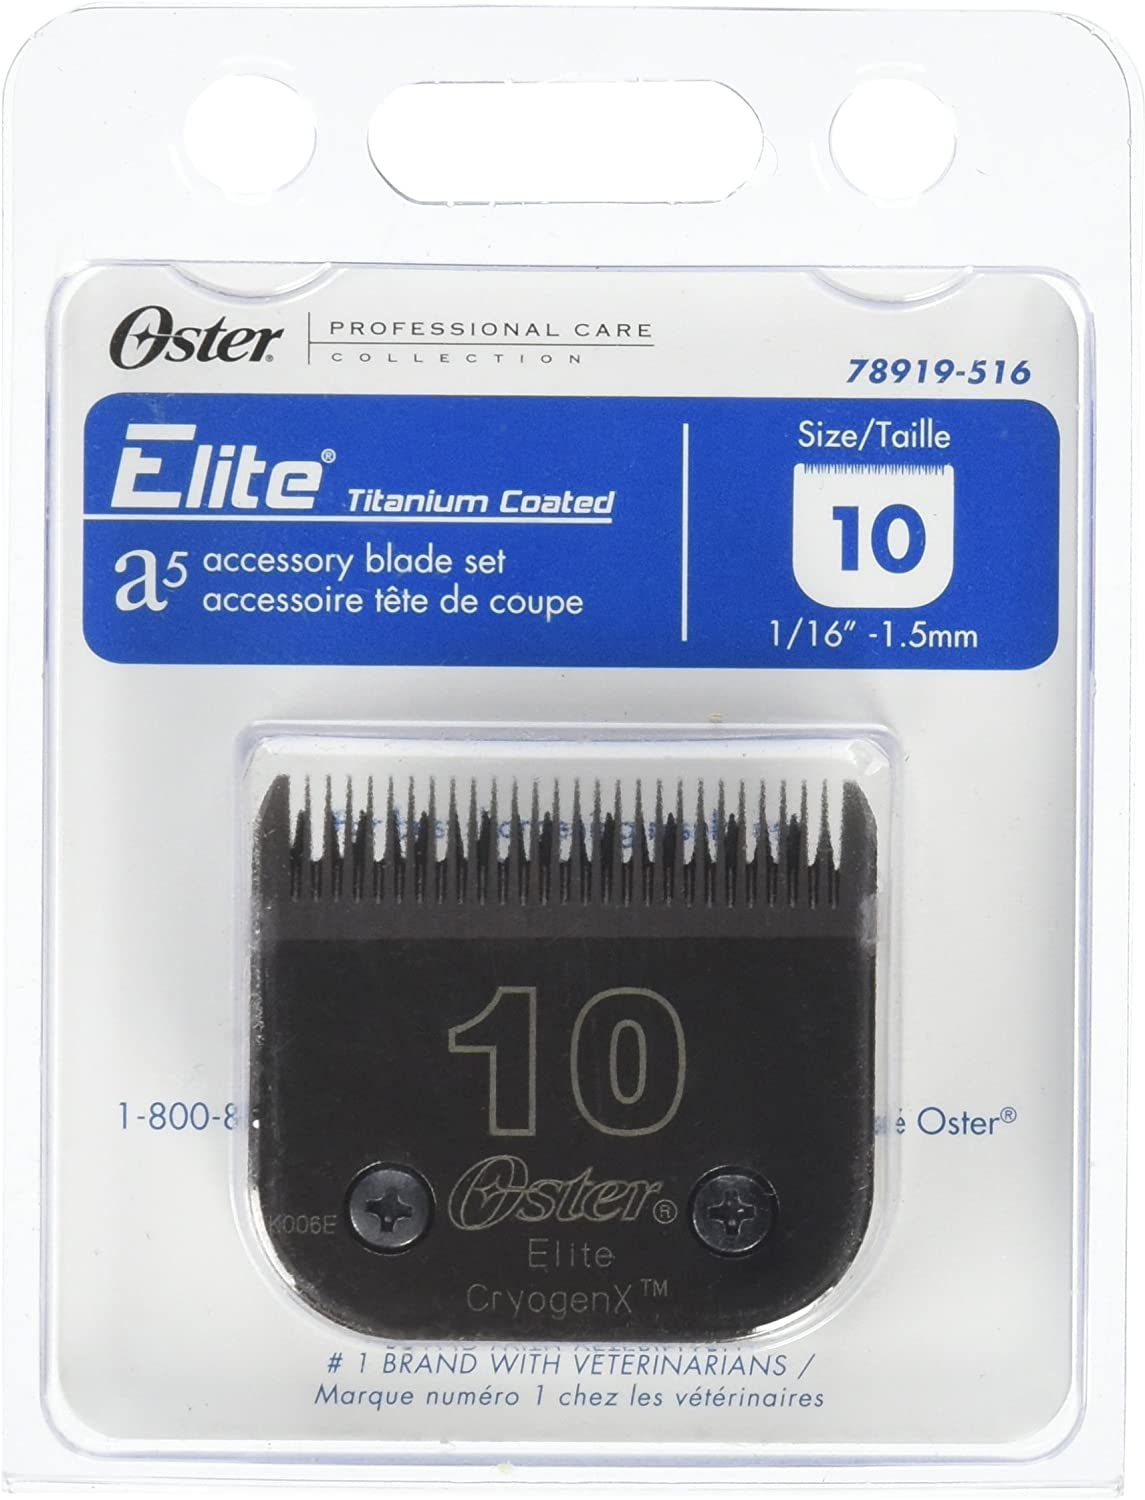 Oster Elite CryogenX Professional Animal Clipper Blade, Size 10 (078919-516-005)